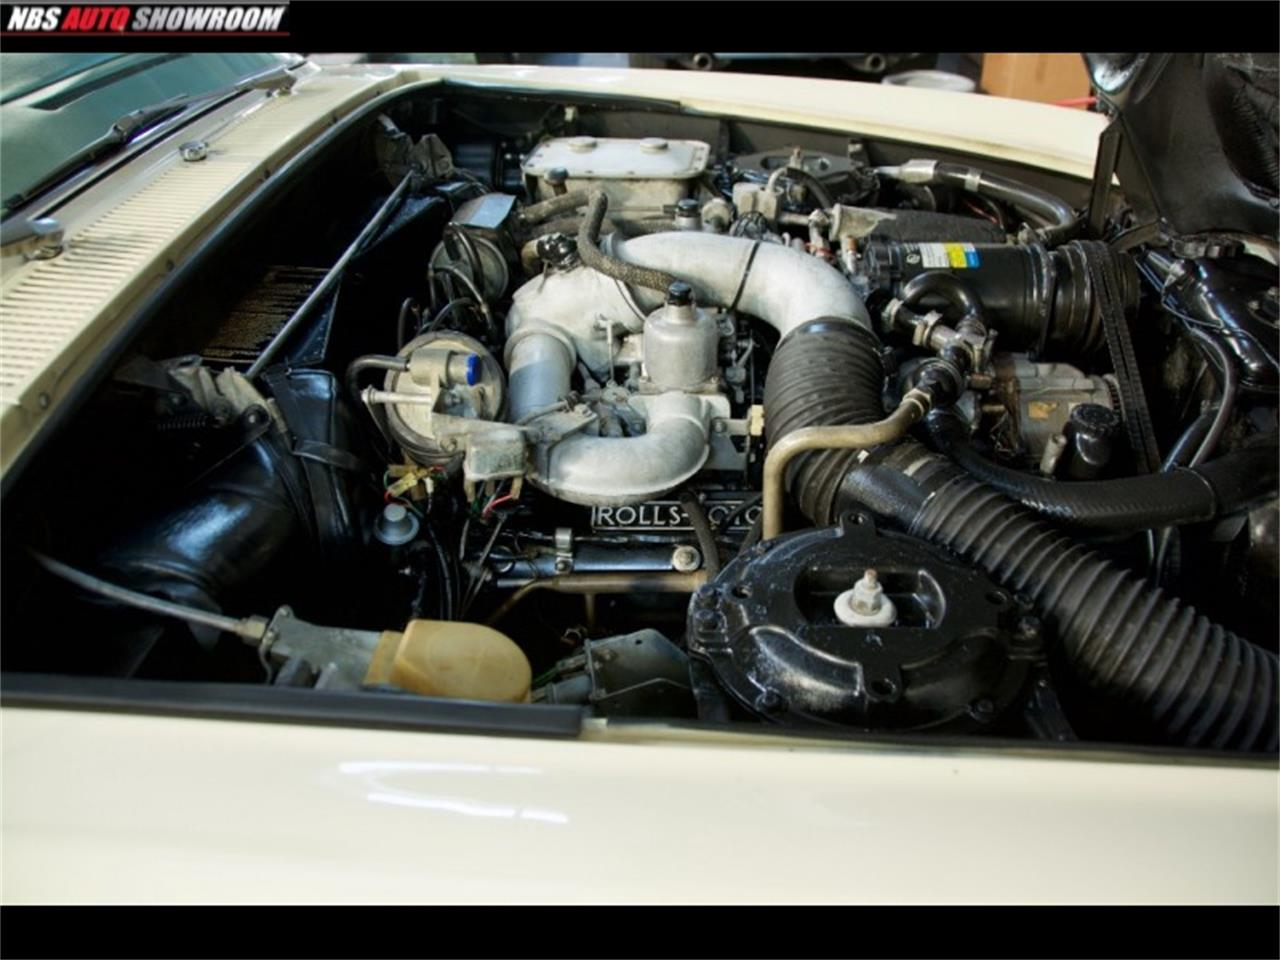 1978 Rolls-Royce Silver Wraith II (CC-1231562) for sale in Milpitas, California